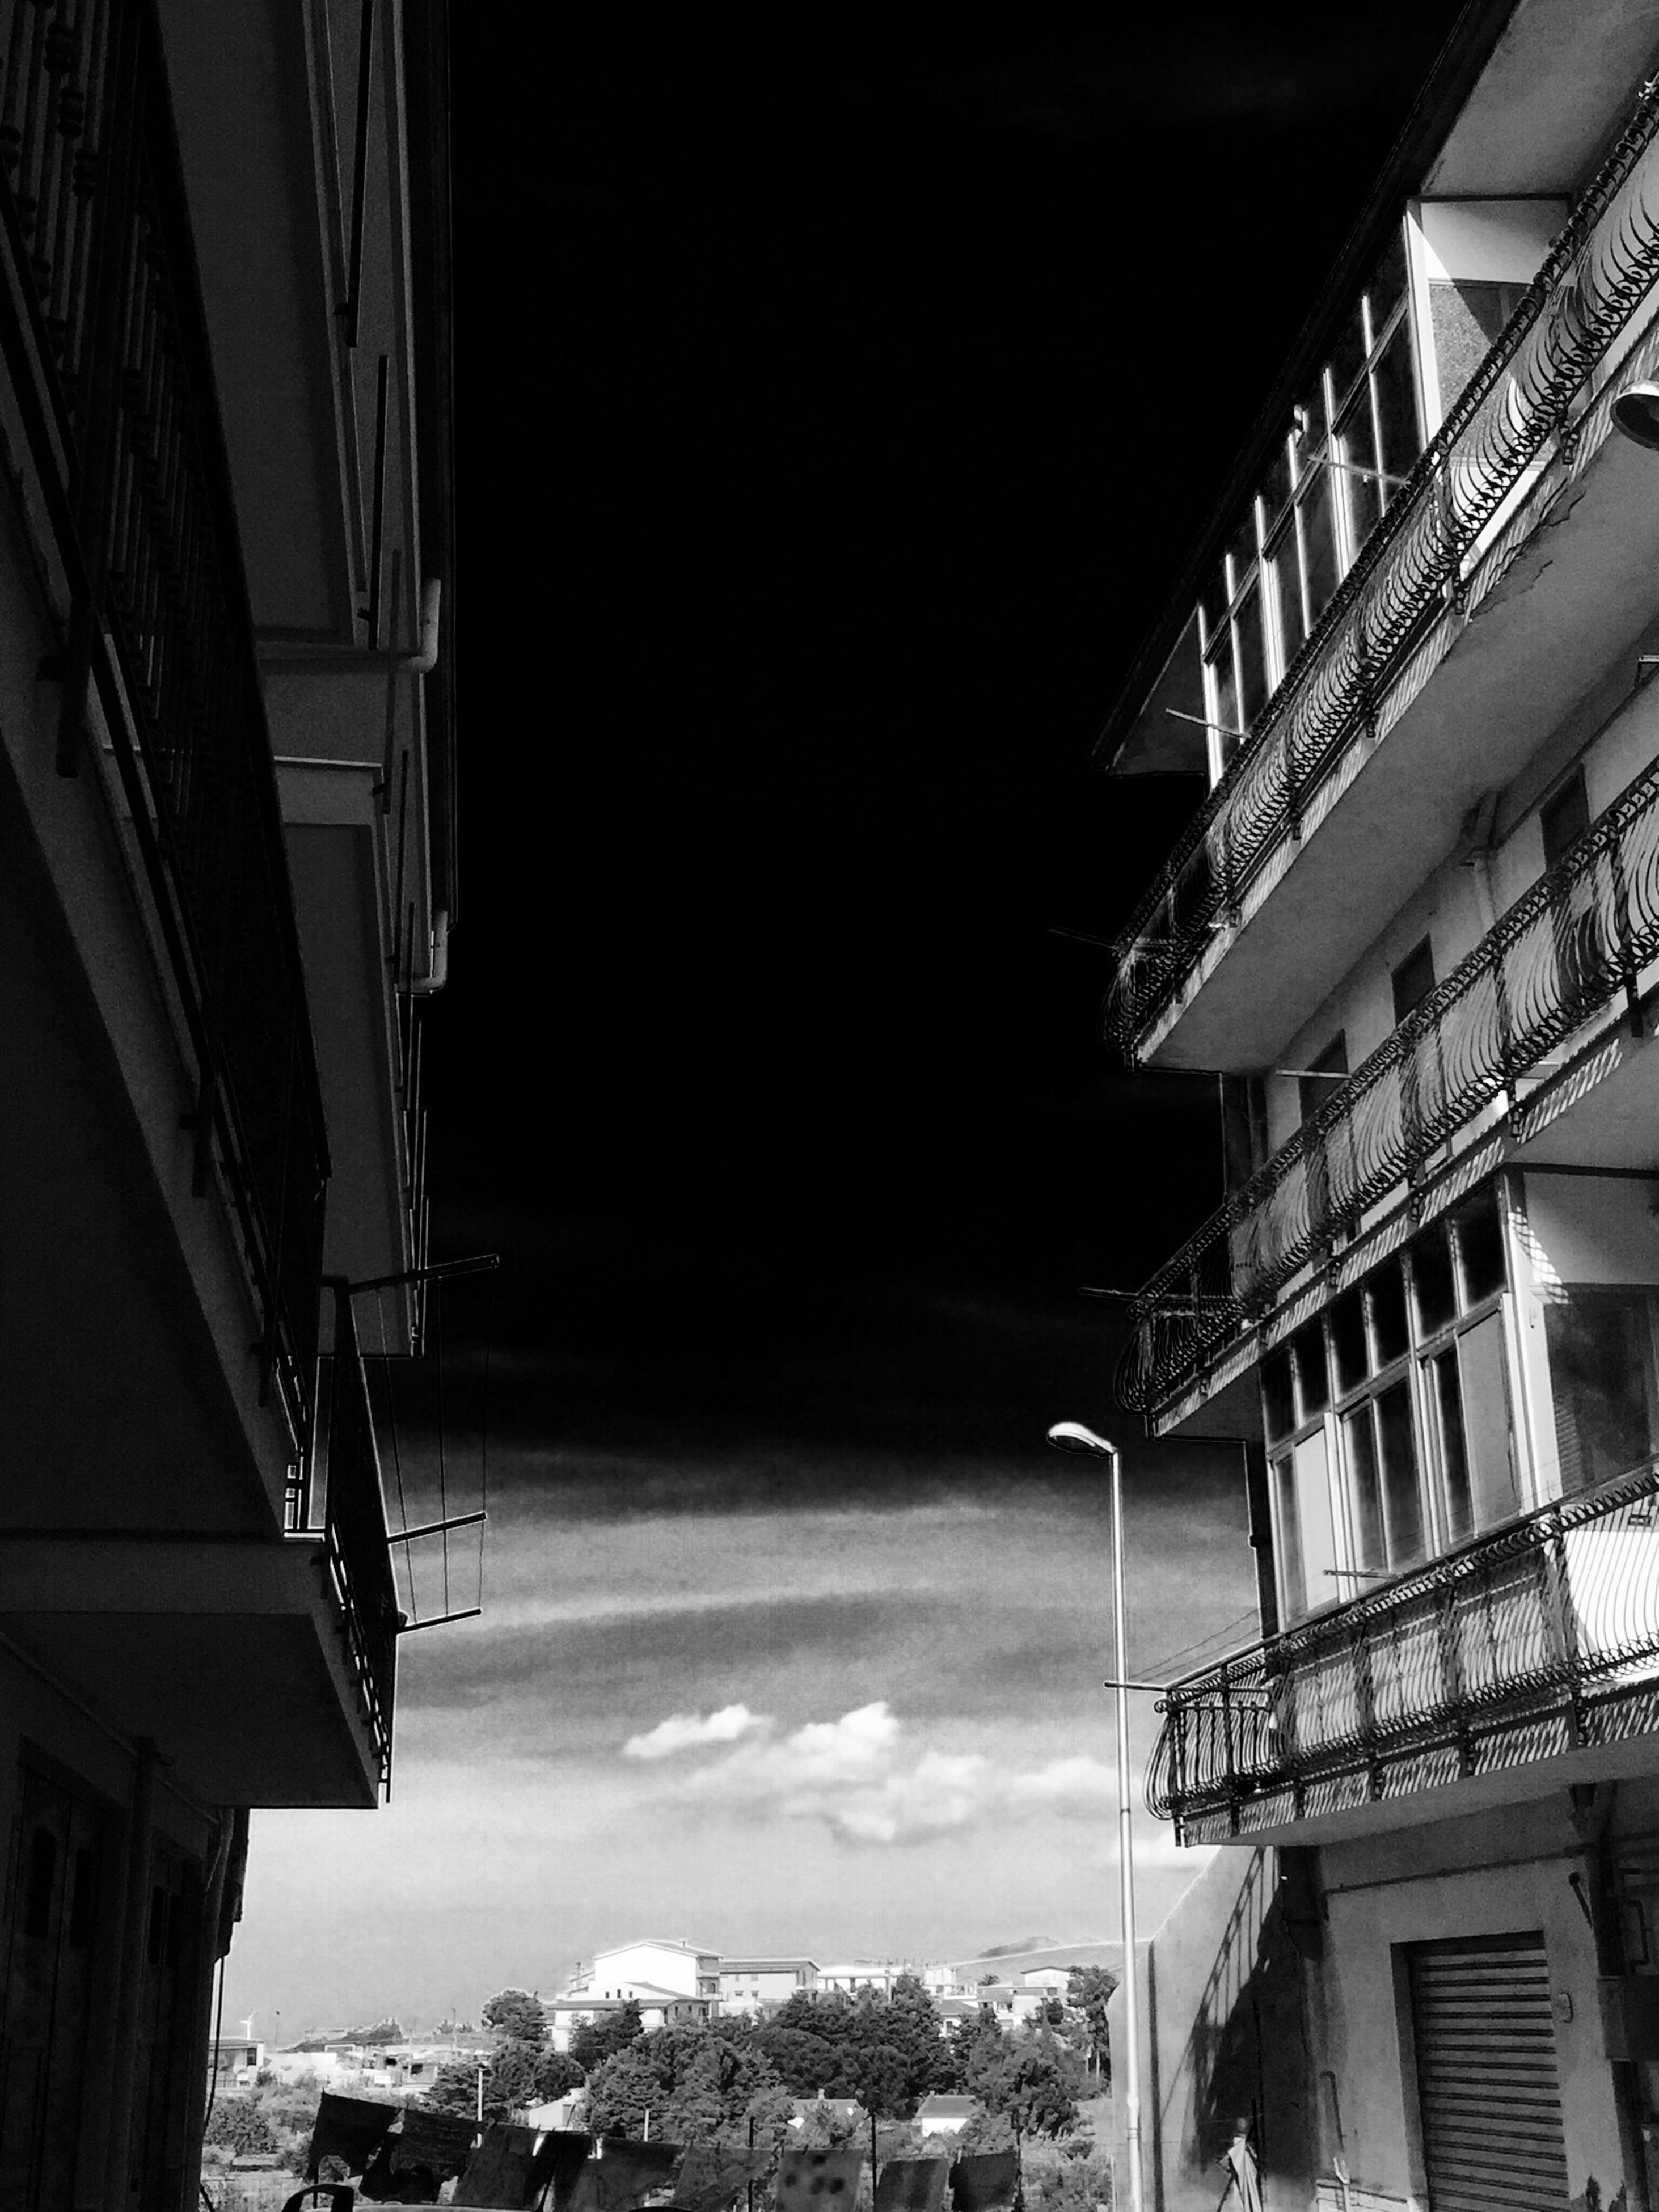 architecture, built structure, building exterior, residential building, residential structure, low angle view, city, building, house, residential district, sky, balcony, day, no people, outdoors, roof, window, city life, cityscape, apartment